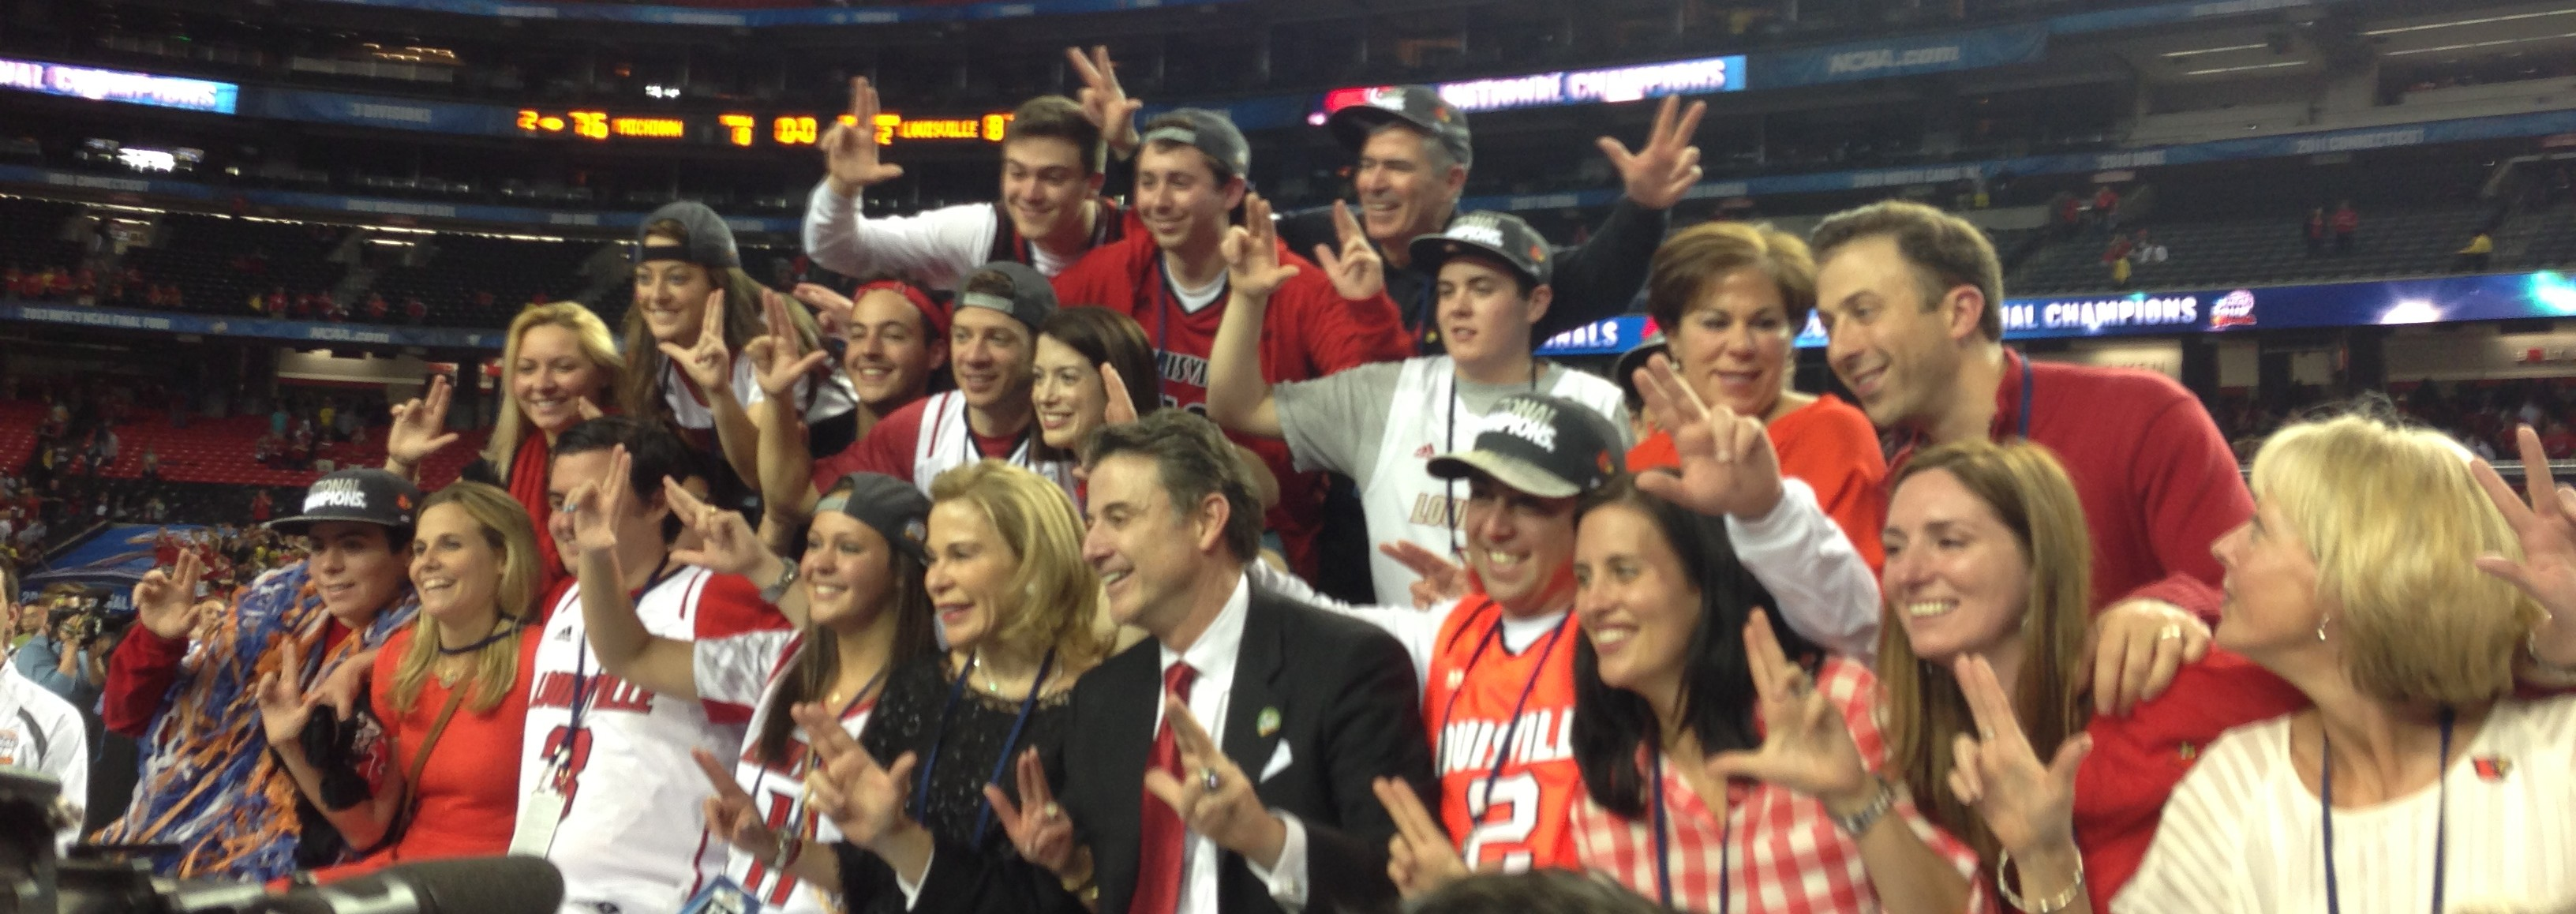 Pitino Family 2013 National Championship Photo by Mark Blankenbaker